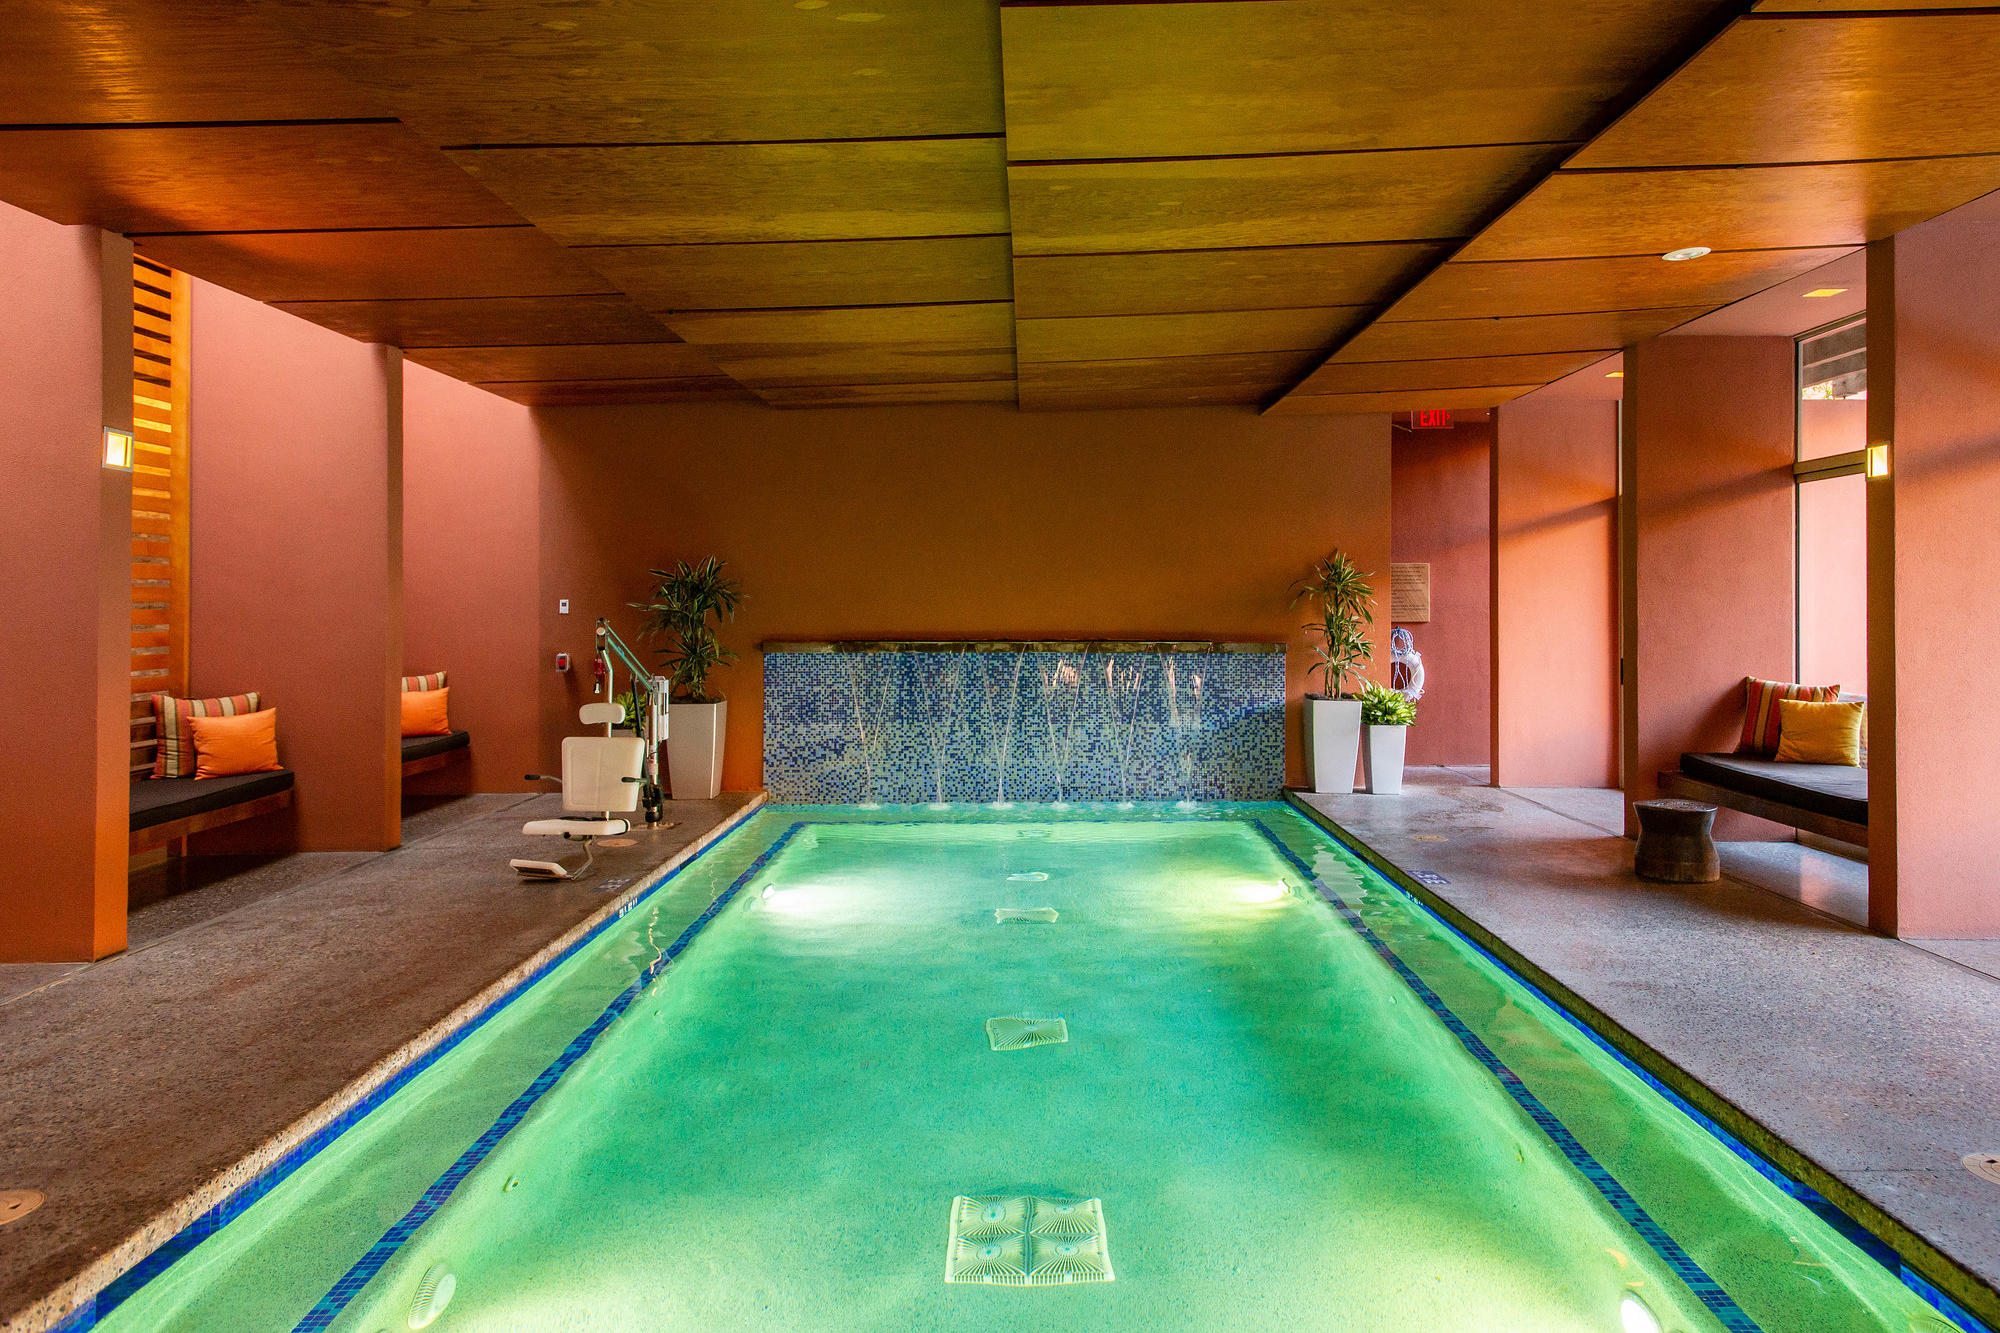 The 15 Best Hotel Spas in the U.S.